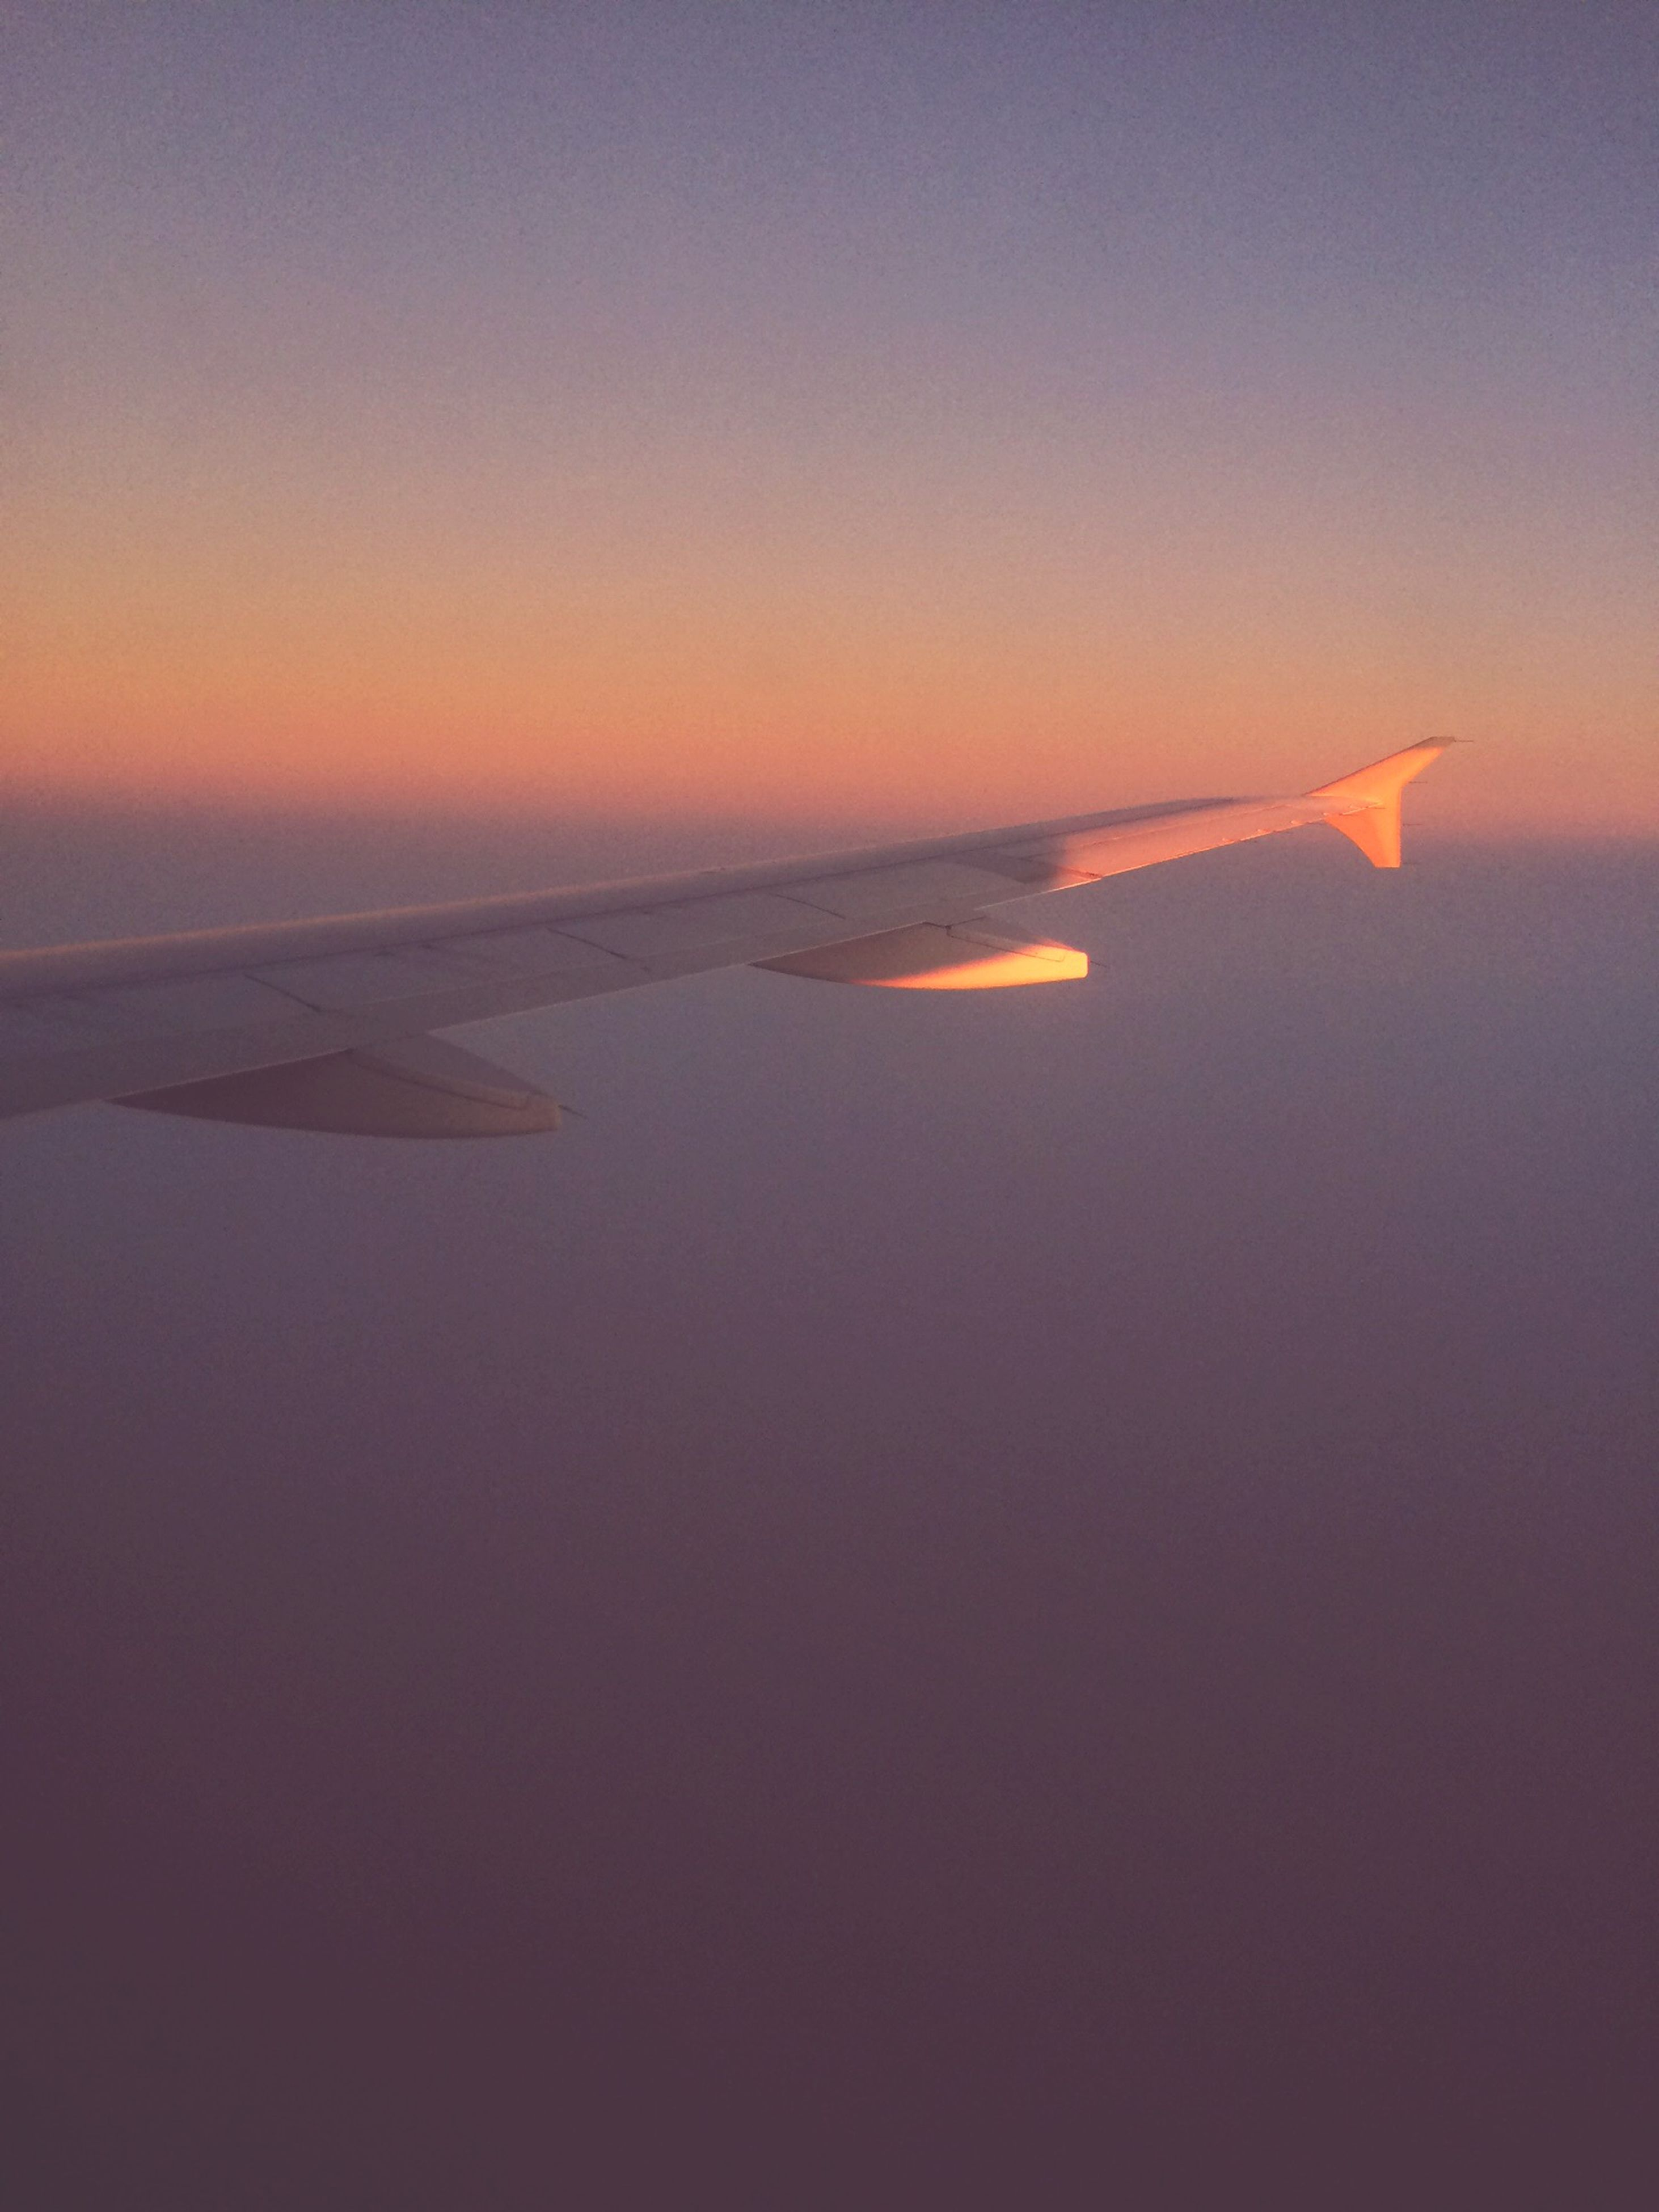 airplane, flying, sunset, aircraft wing, air vehicle, transportation, aerial view, mode of transport, scenics, sky, beauty in nature, part of, nature, mid-air, cropped, orange color, travel, tranquil scene, copy space, airplane wing